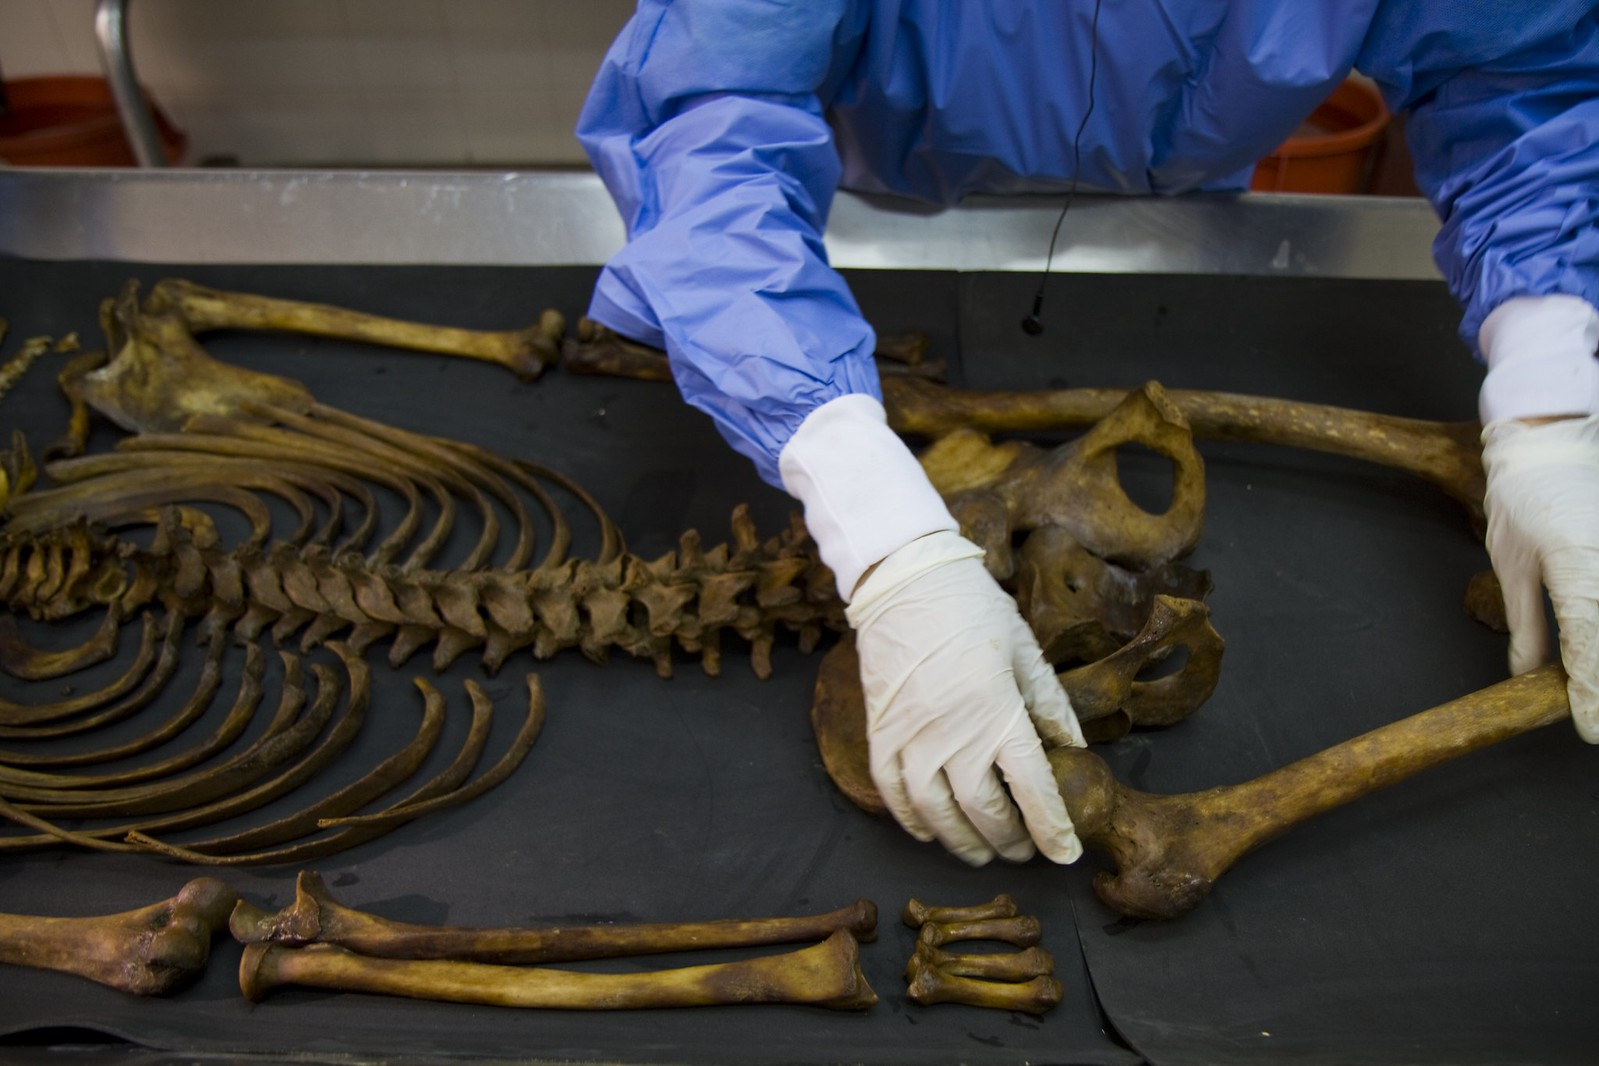 A skeleton being laid out on a table in a lab by a person wearing gloves